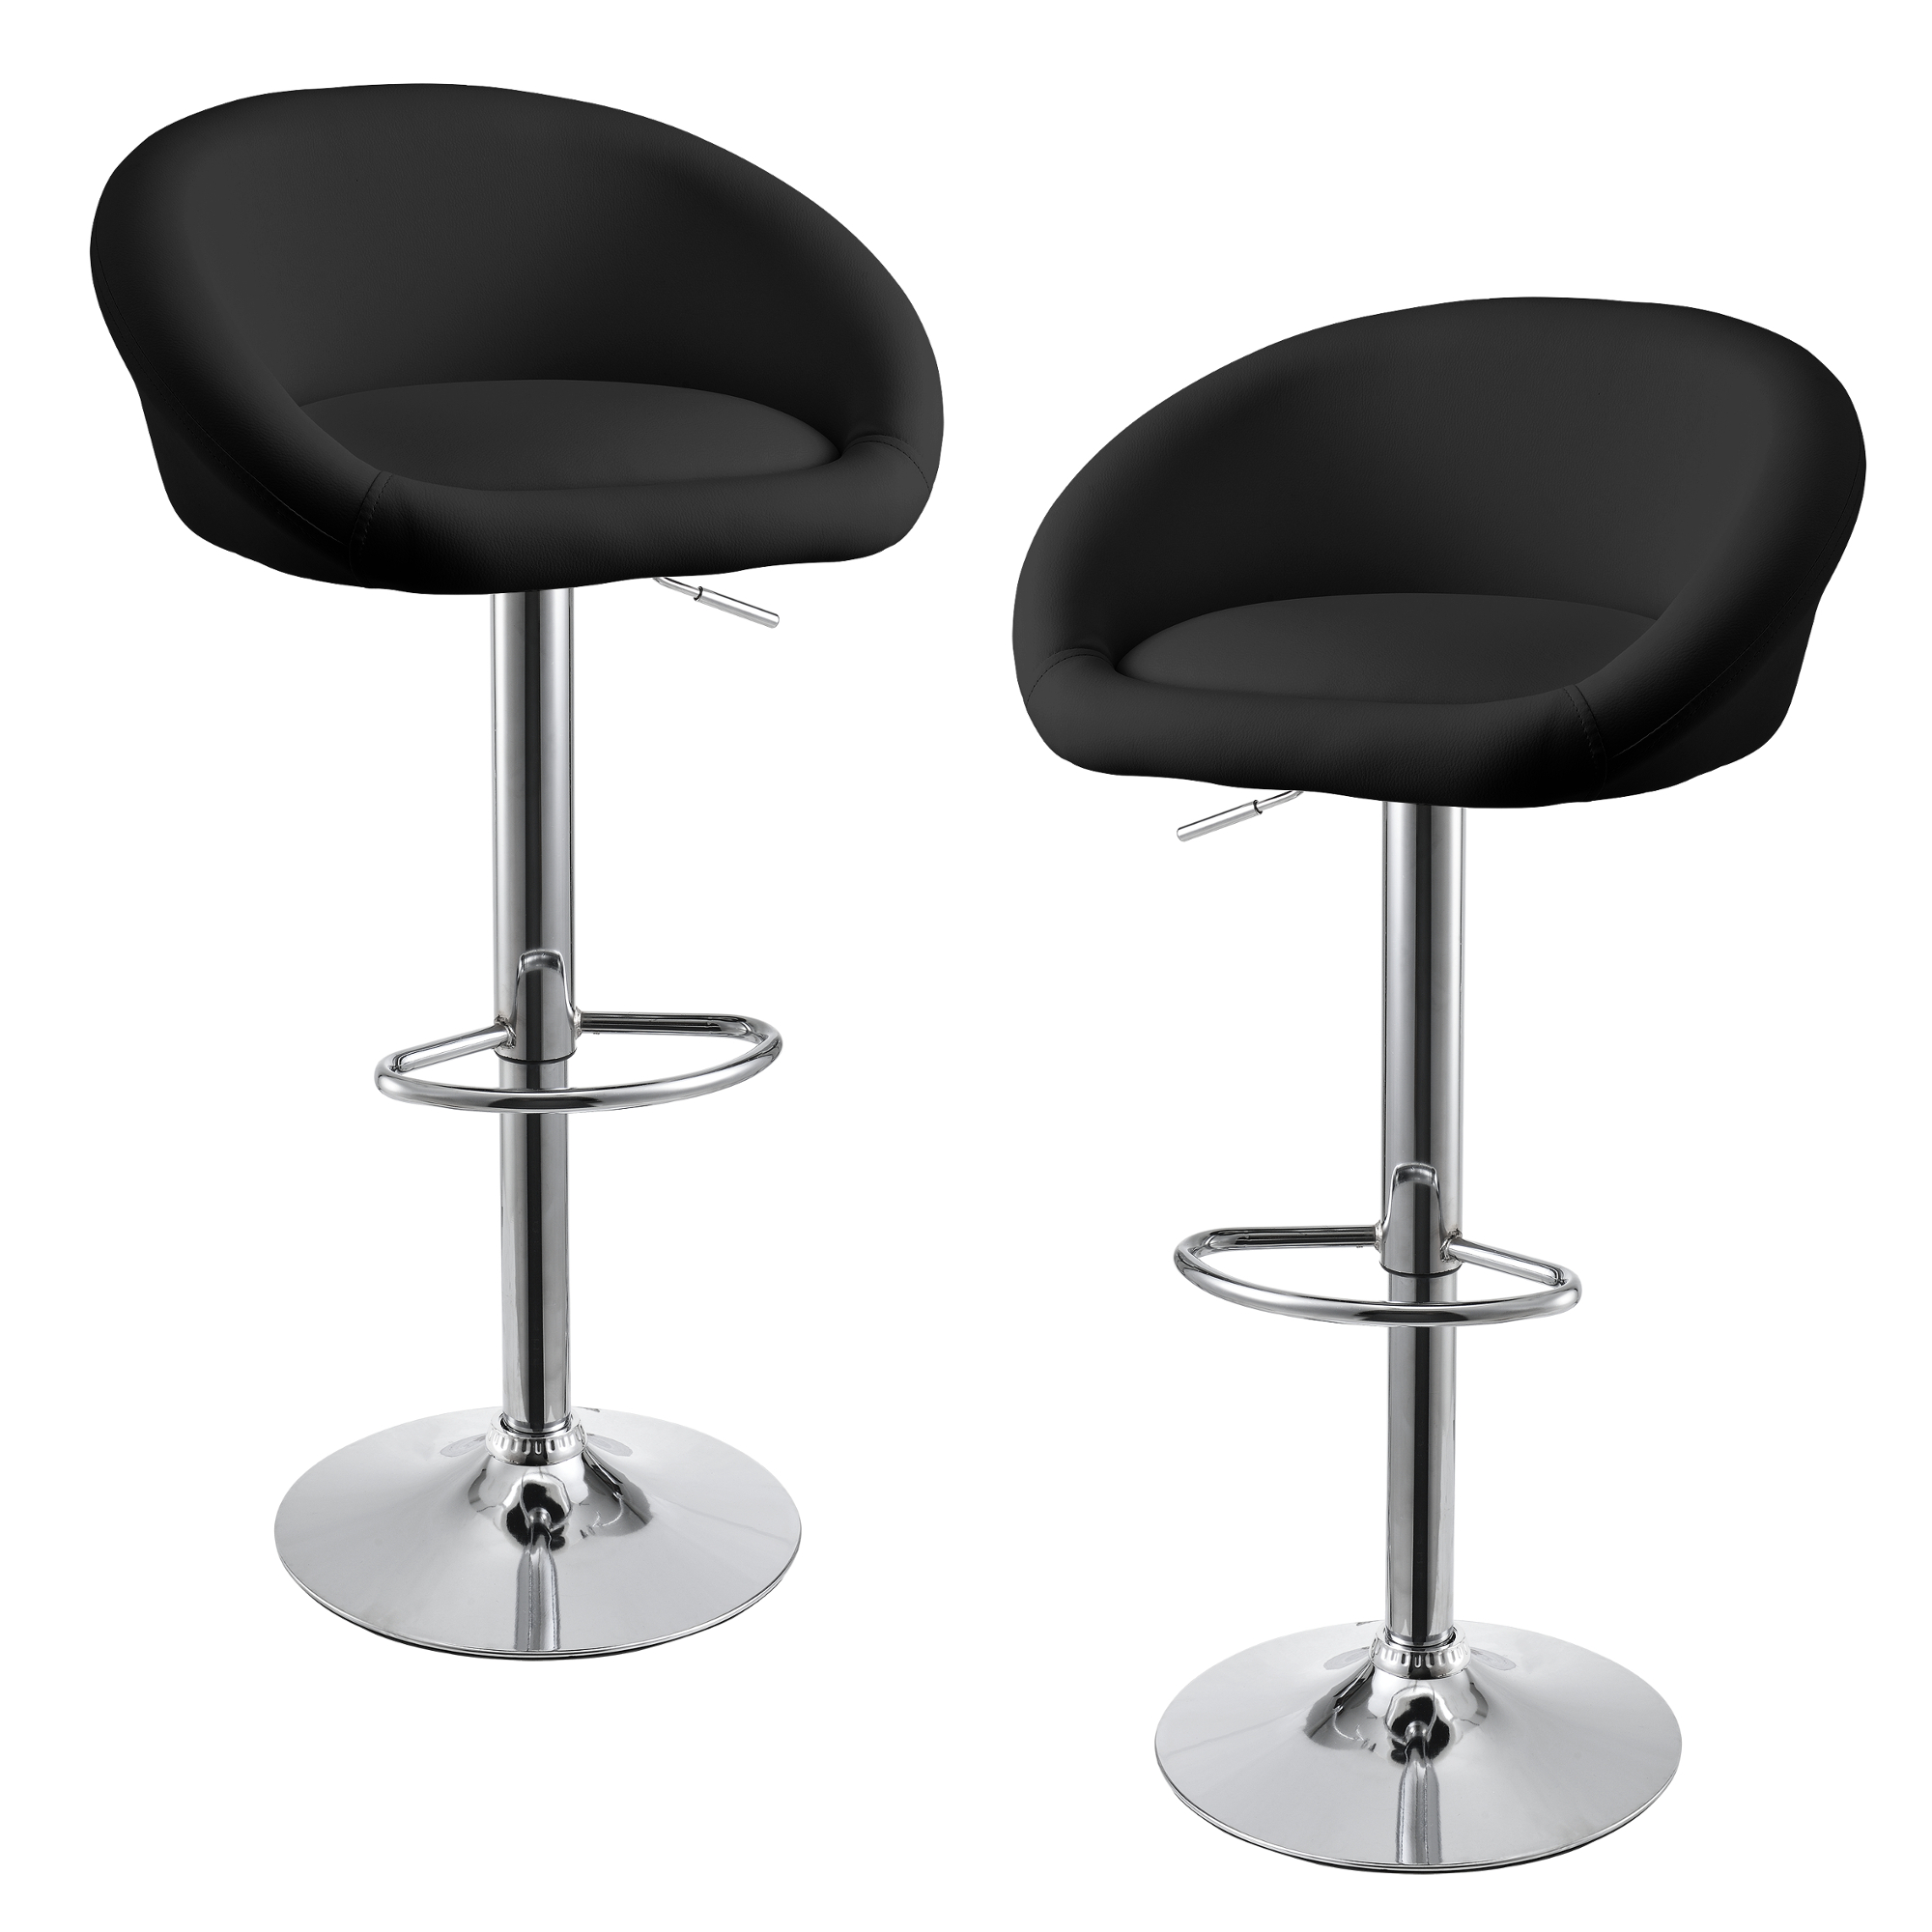 tabouret de bar noir kit de 2 bar tabouret comptoir ebay. Black Bedroom Furniture Sets. Home Design Ideas